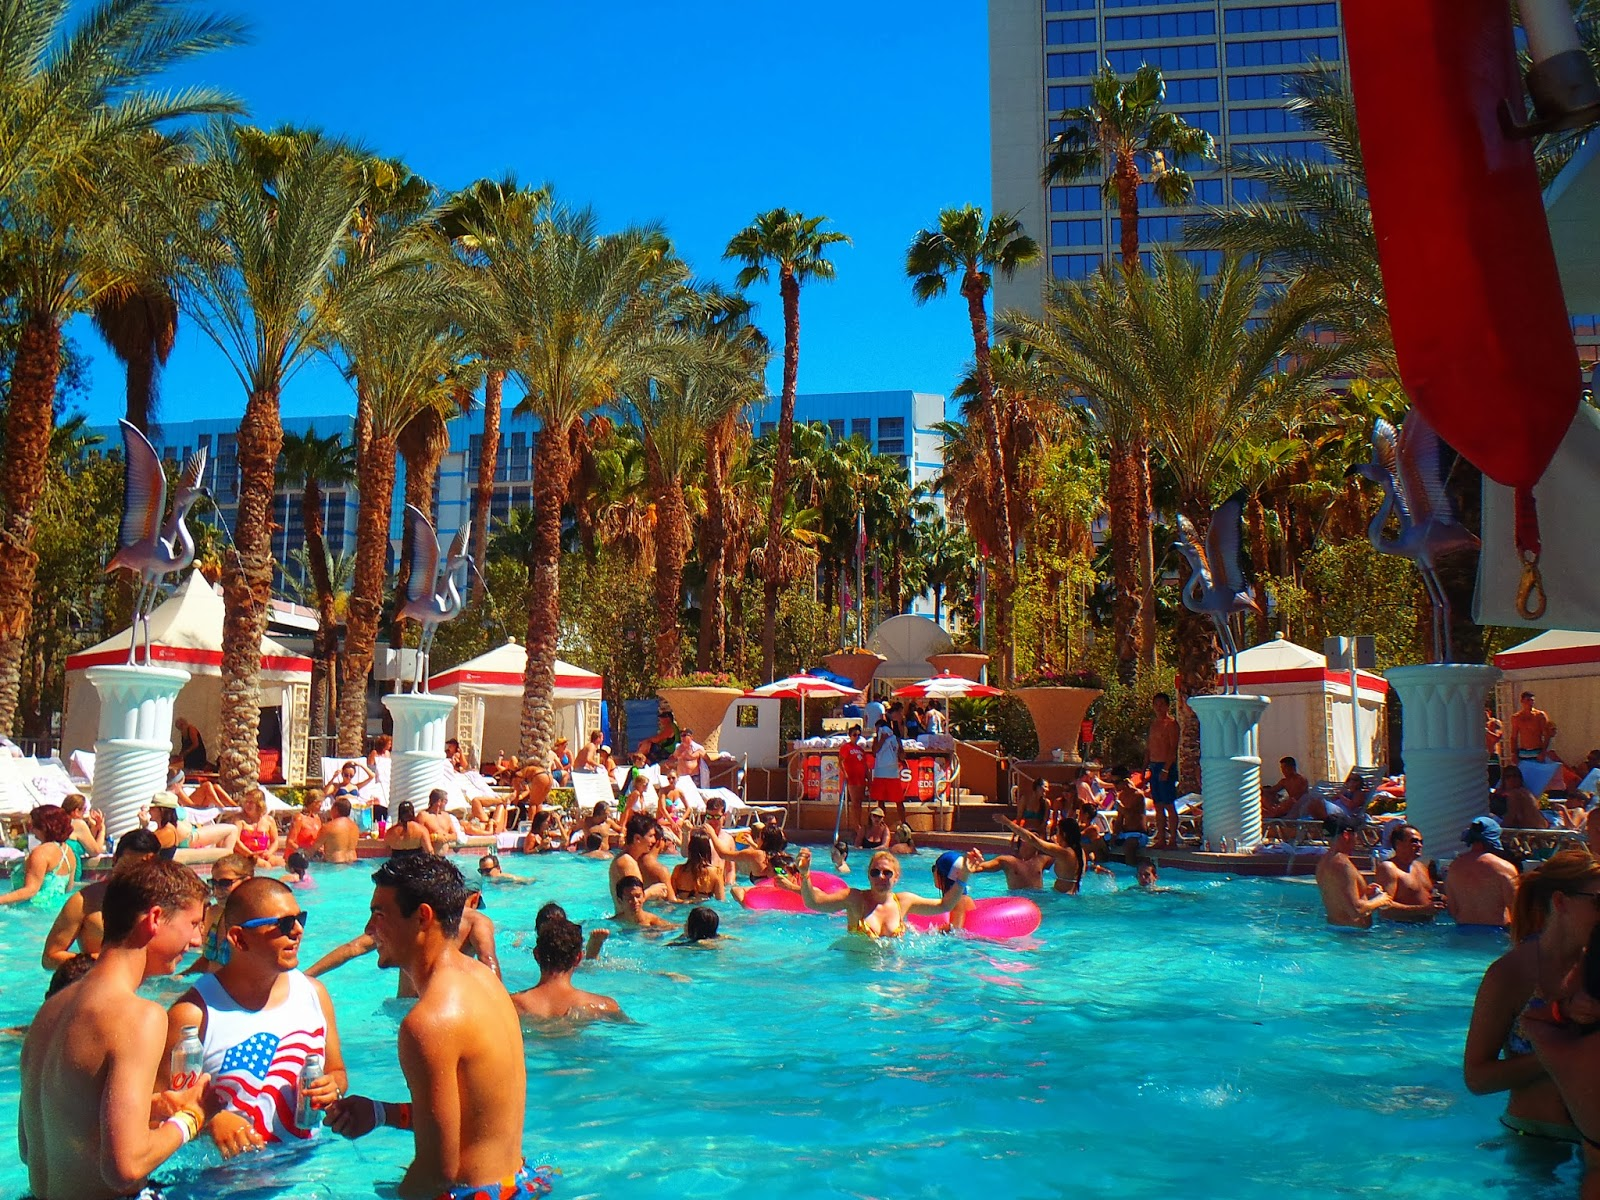 Flamingo Hotel Las Vegas Pool